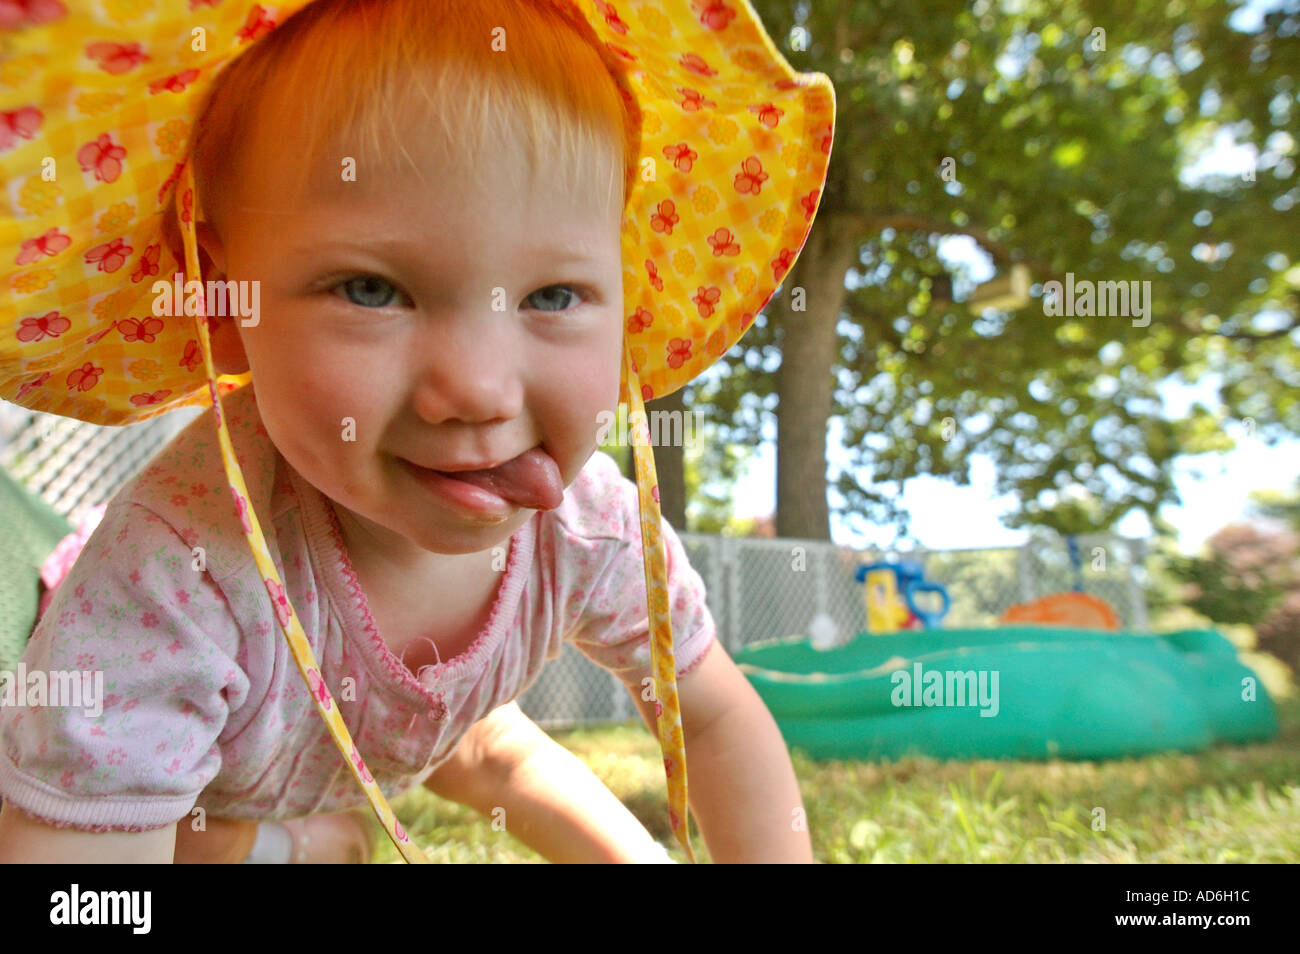 baby toddler child blue eyes blonde hair blond 1 one year